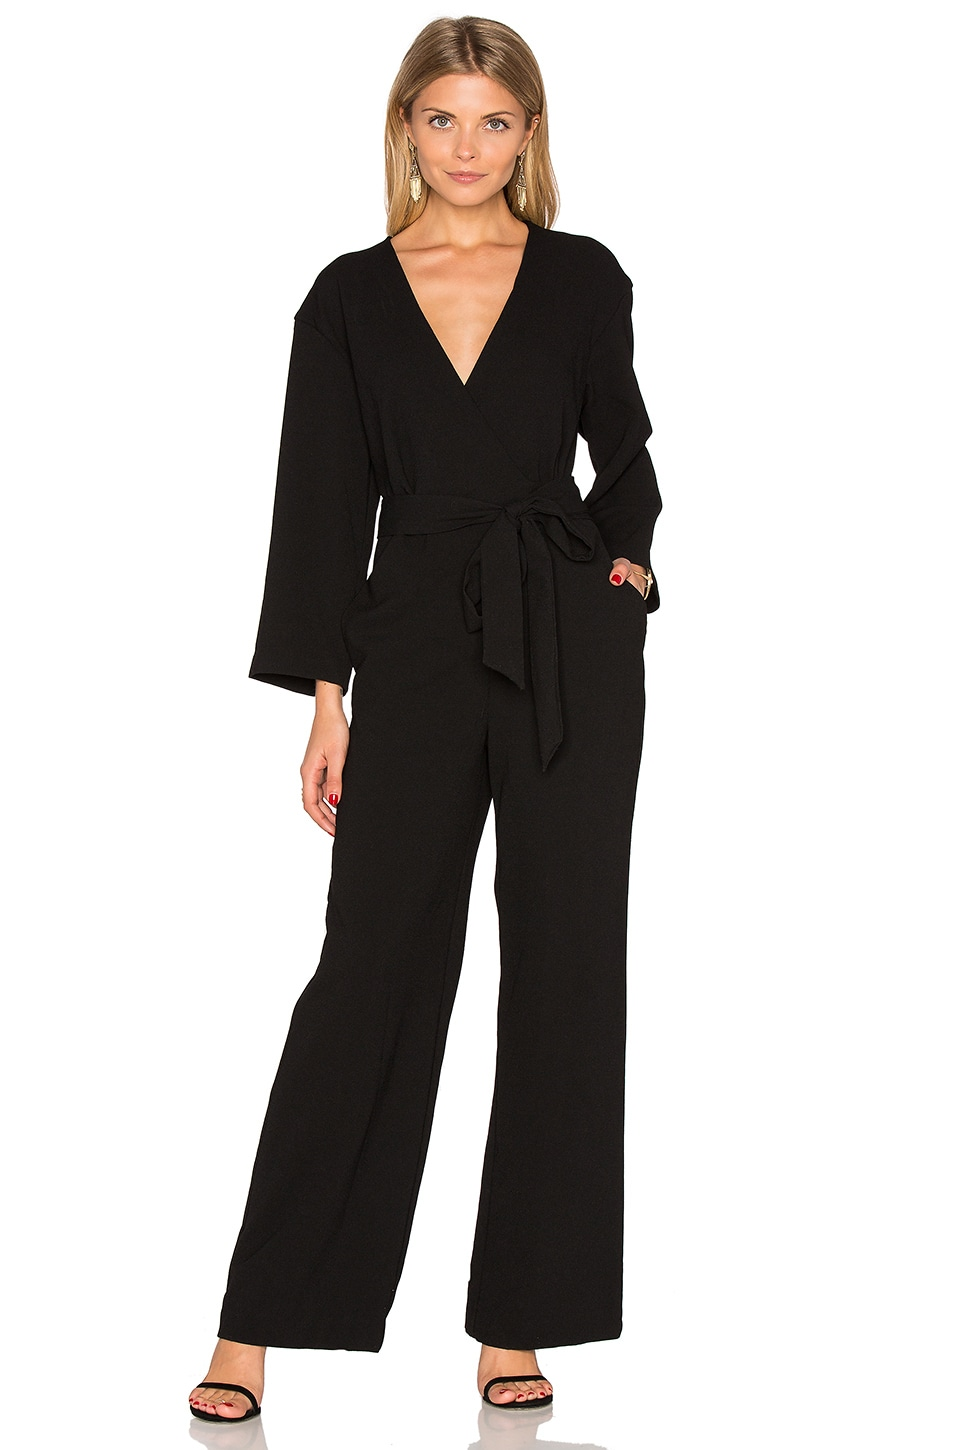 Long Sleeve Wrap Jumpsuit by Enza Costa